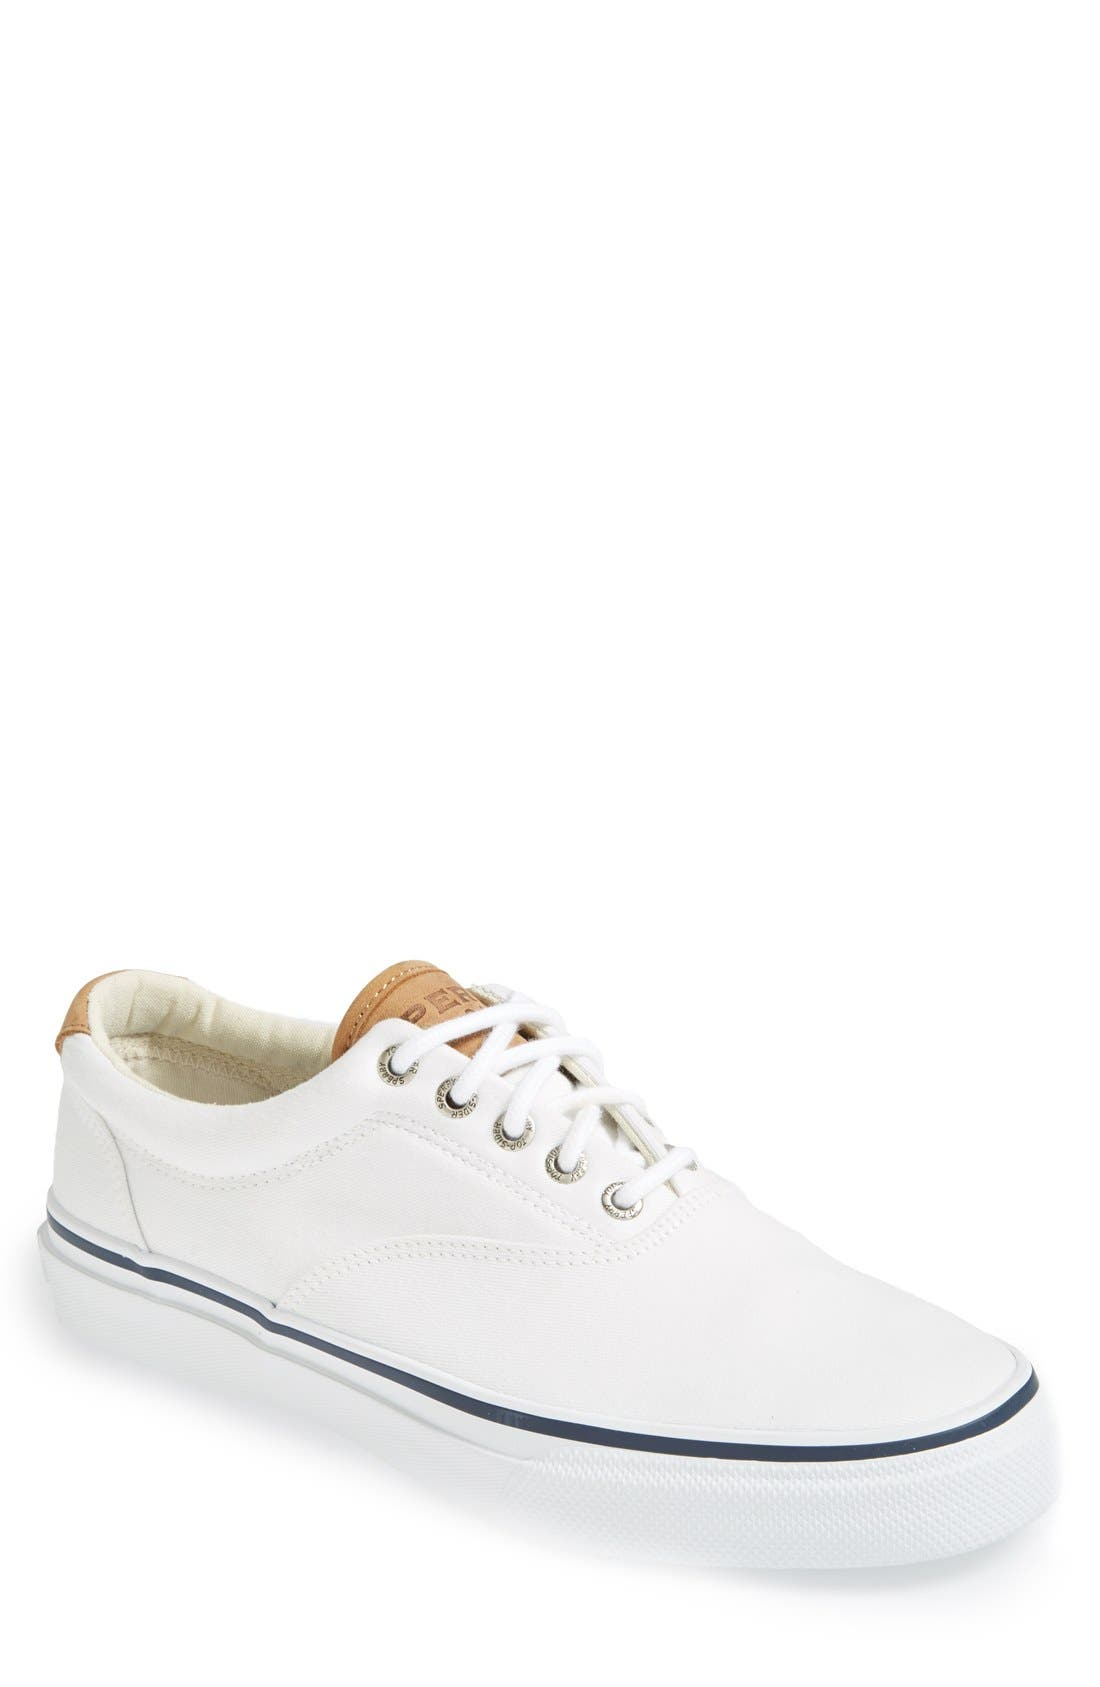 Main Image - Sperry 'Striper CVO' Sneaker (Men)